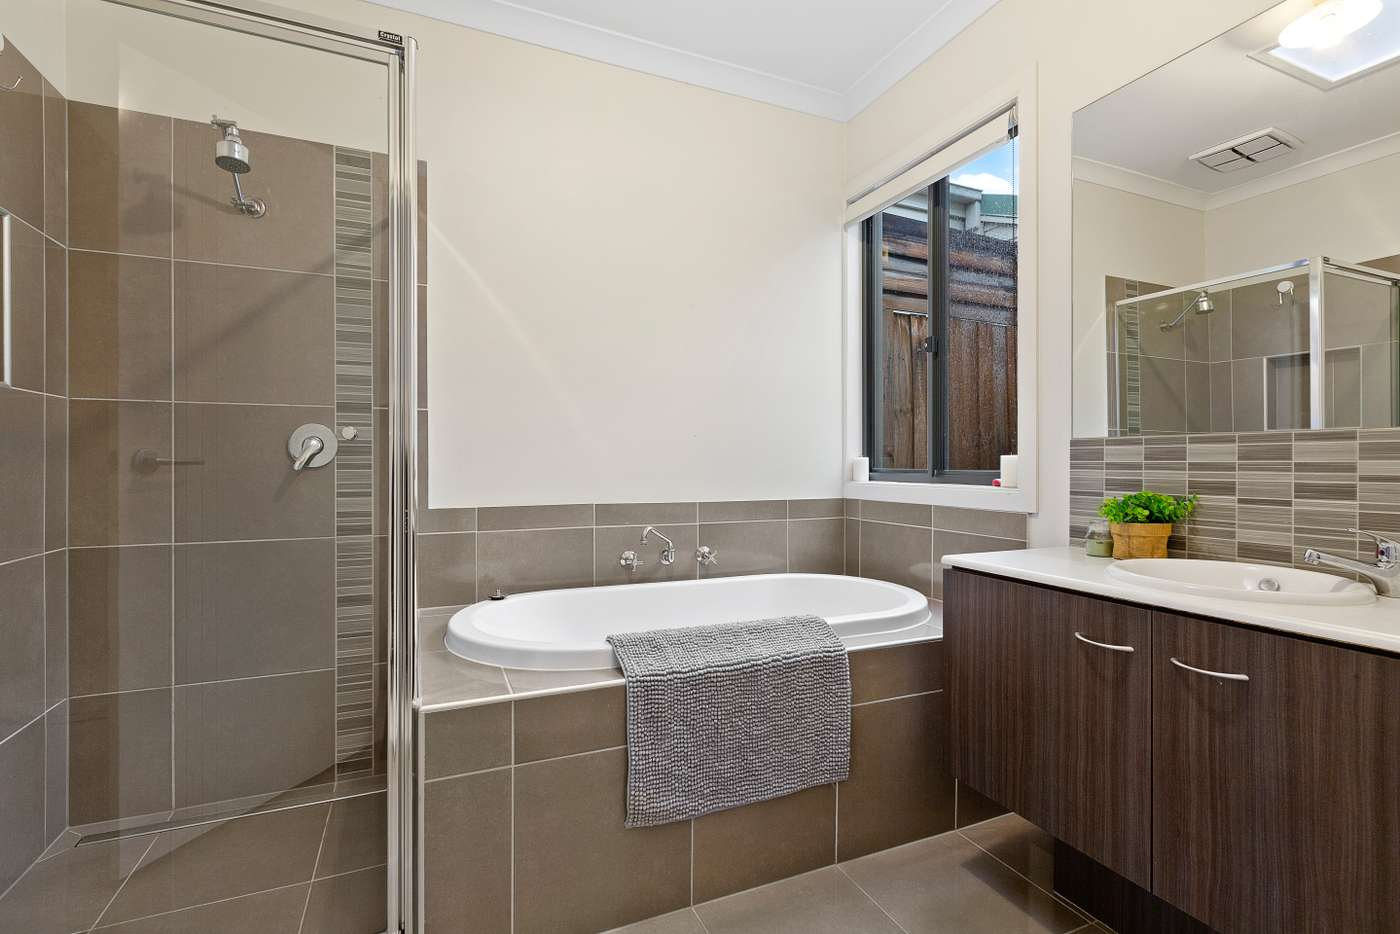 Sixth view of Homely house listing, 12A Morris Road, Croydon VIC 3136